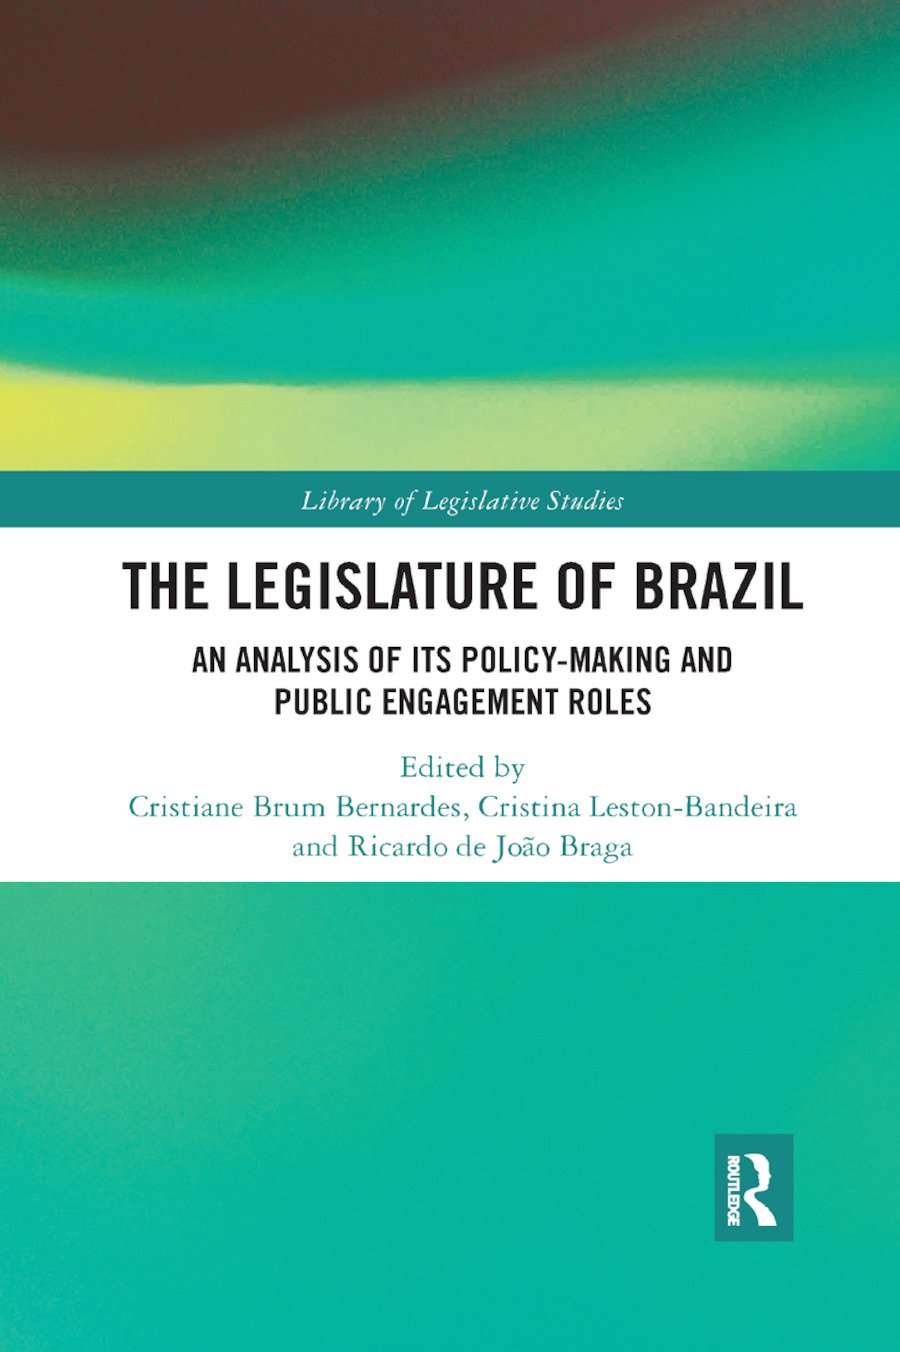 The Legislature of Brazil: An Analysis of Its Policy-Making and Public Engagement Roles book cover